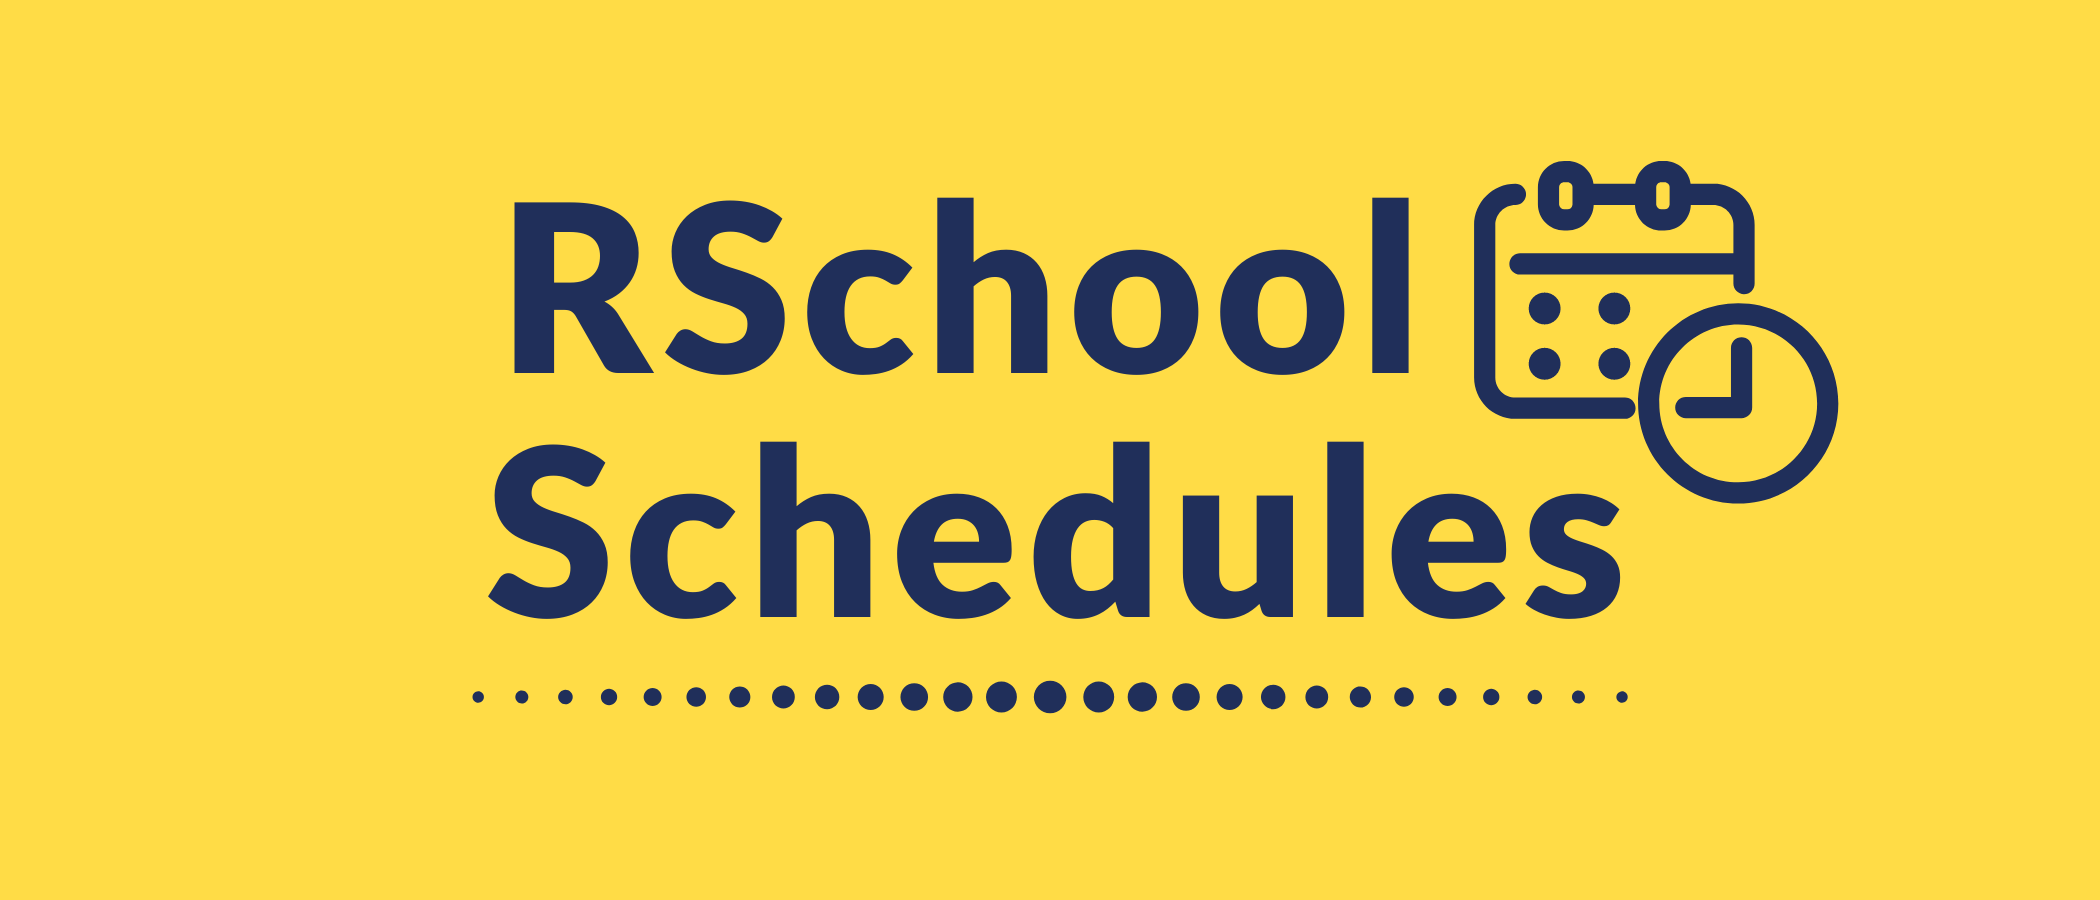 R School Schedules